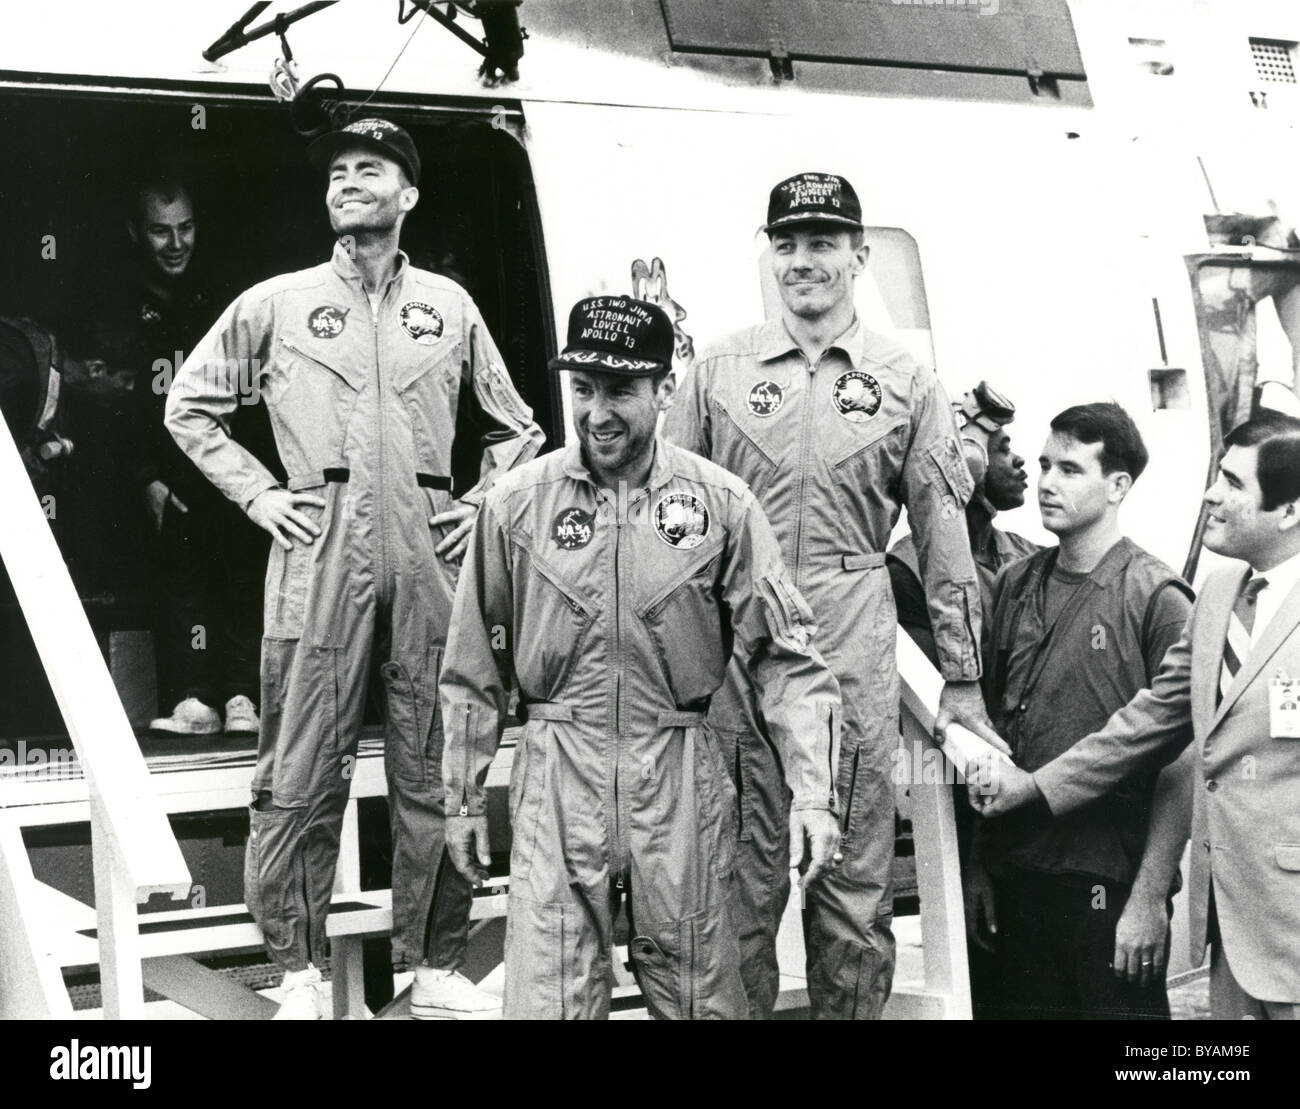 Apollo 13 Fred. W. Haise, James A. Lovell Jr. and John L. Swigert Jr. after their return to Earth. - Stock Image